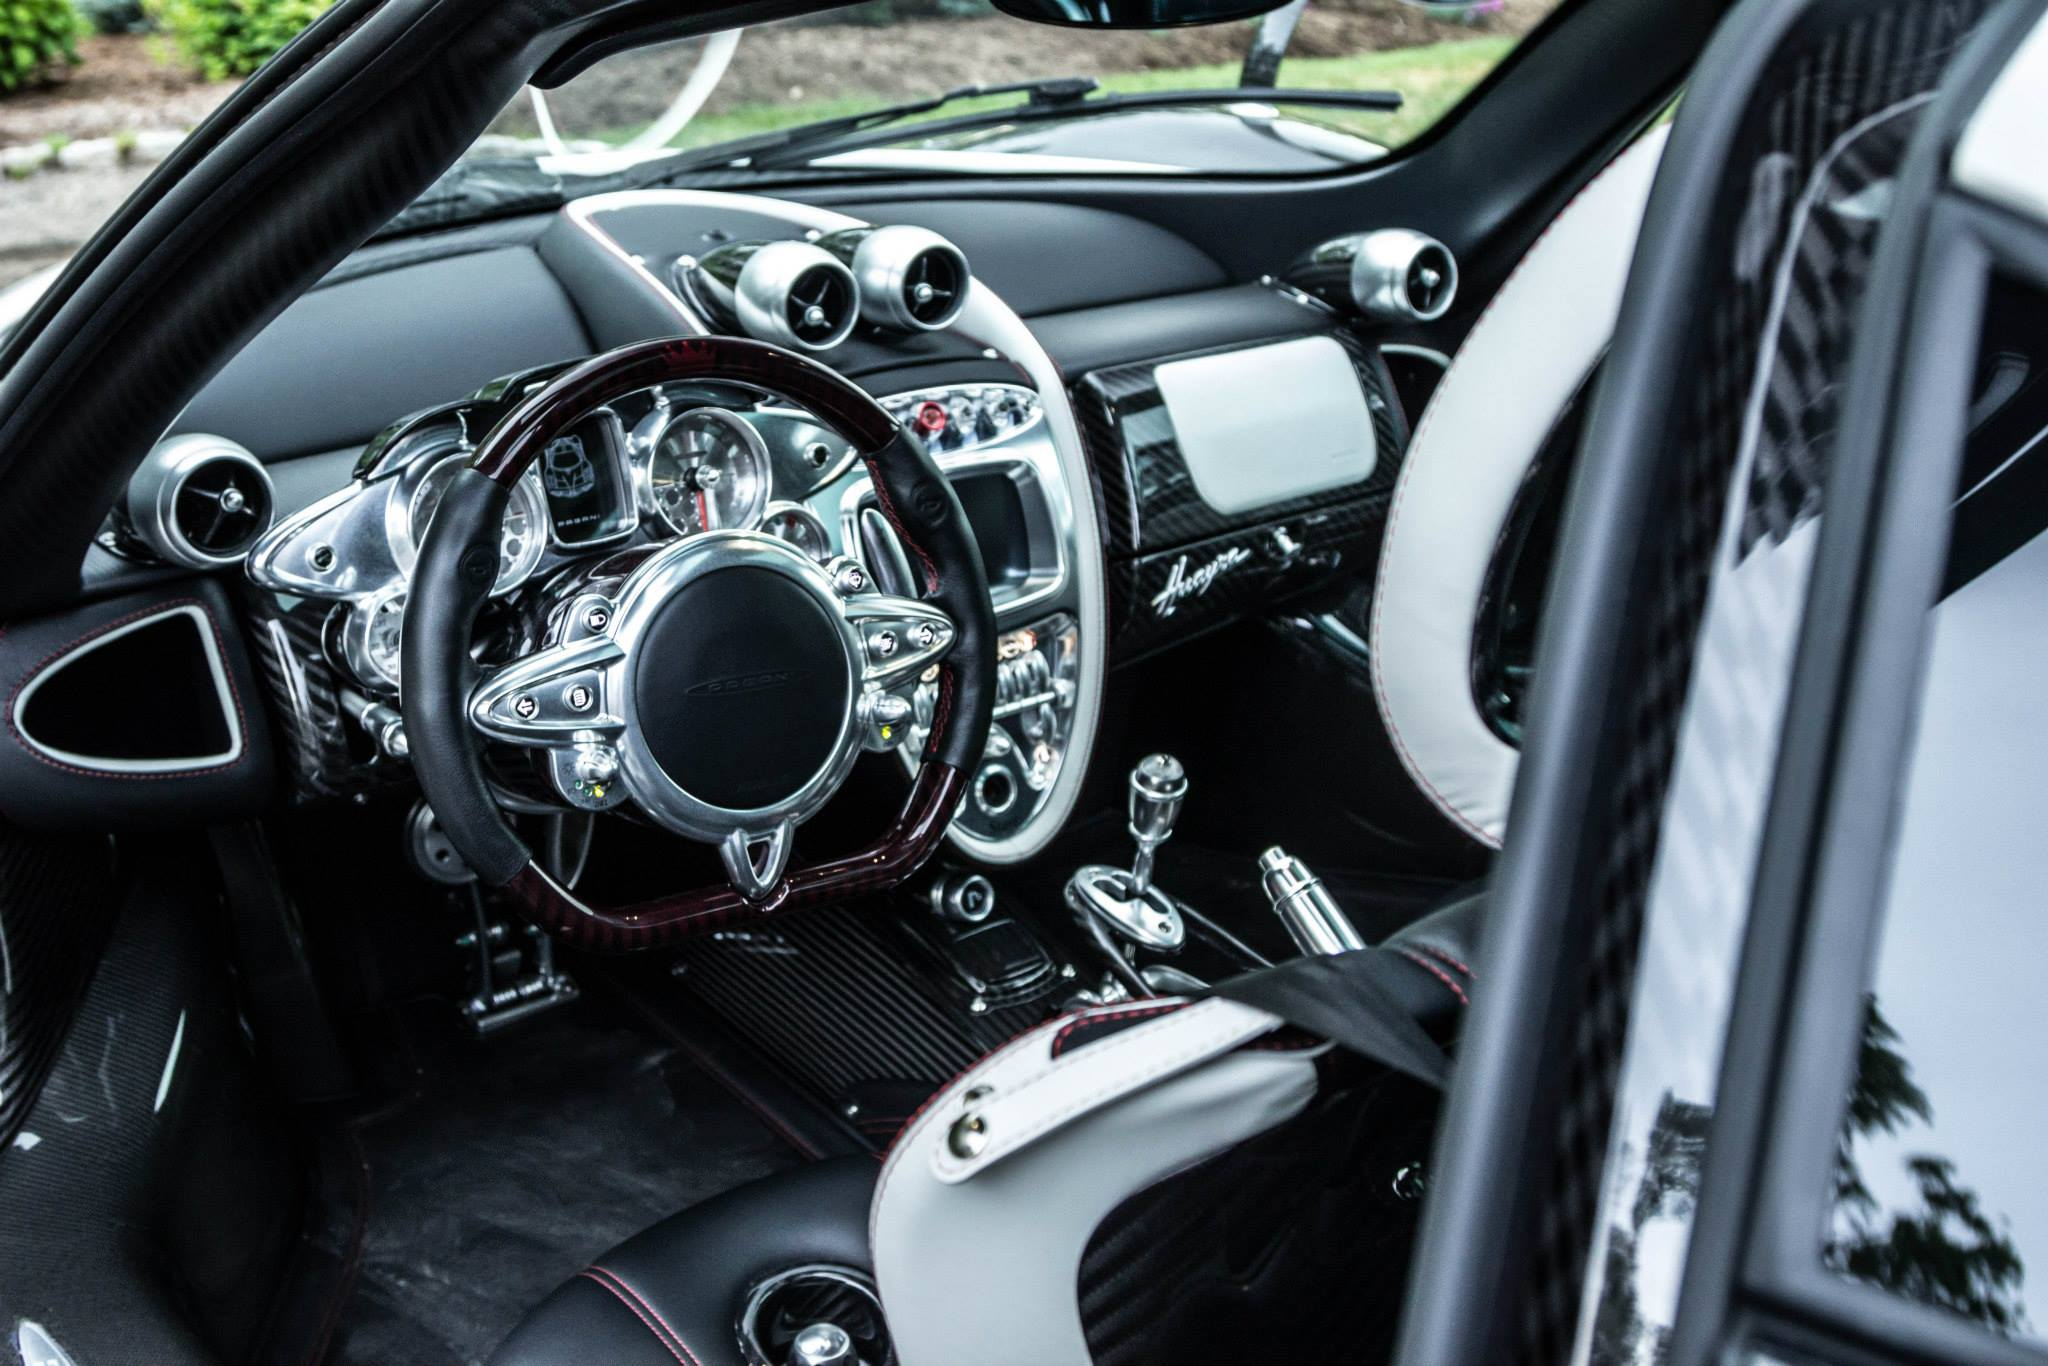 Car Wallpapers Nissan Gtr Quot 1 Of 1 Of 1 Quot Pagani Huayra Interior Photo Size 2048 X